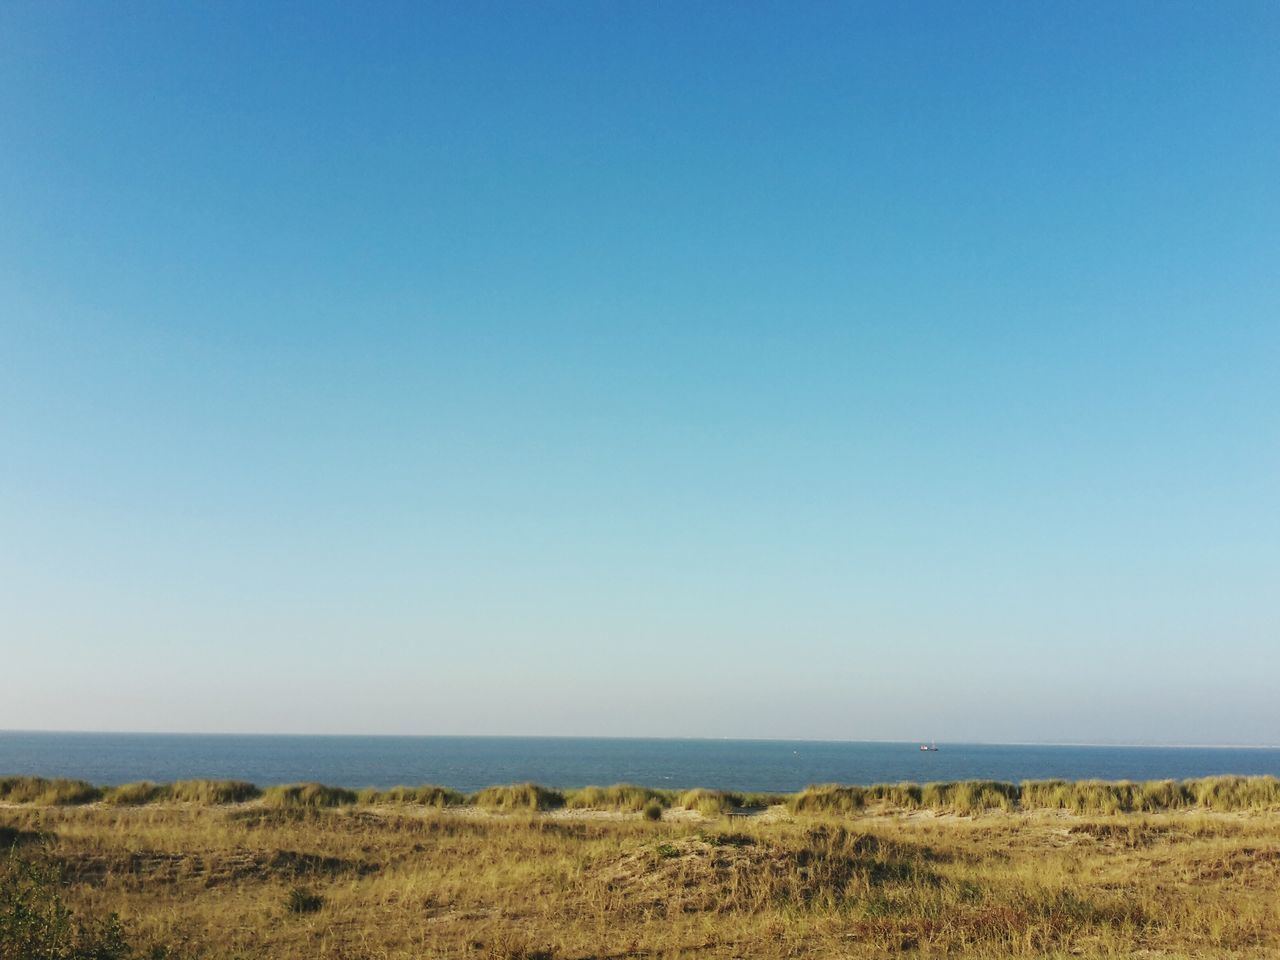 sea, horizon over water, nature, blue, scenics, beach, clear sky, outdoors, water, tranquil scene, day, sky, grass, beauty in nature, no people, landscape, tranquility, marram grass